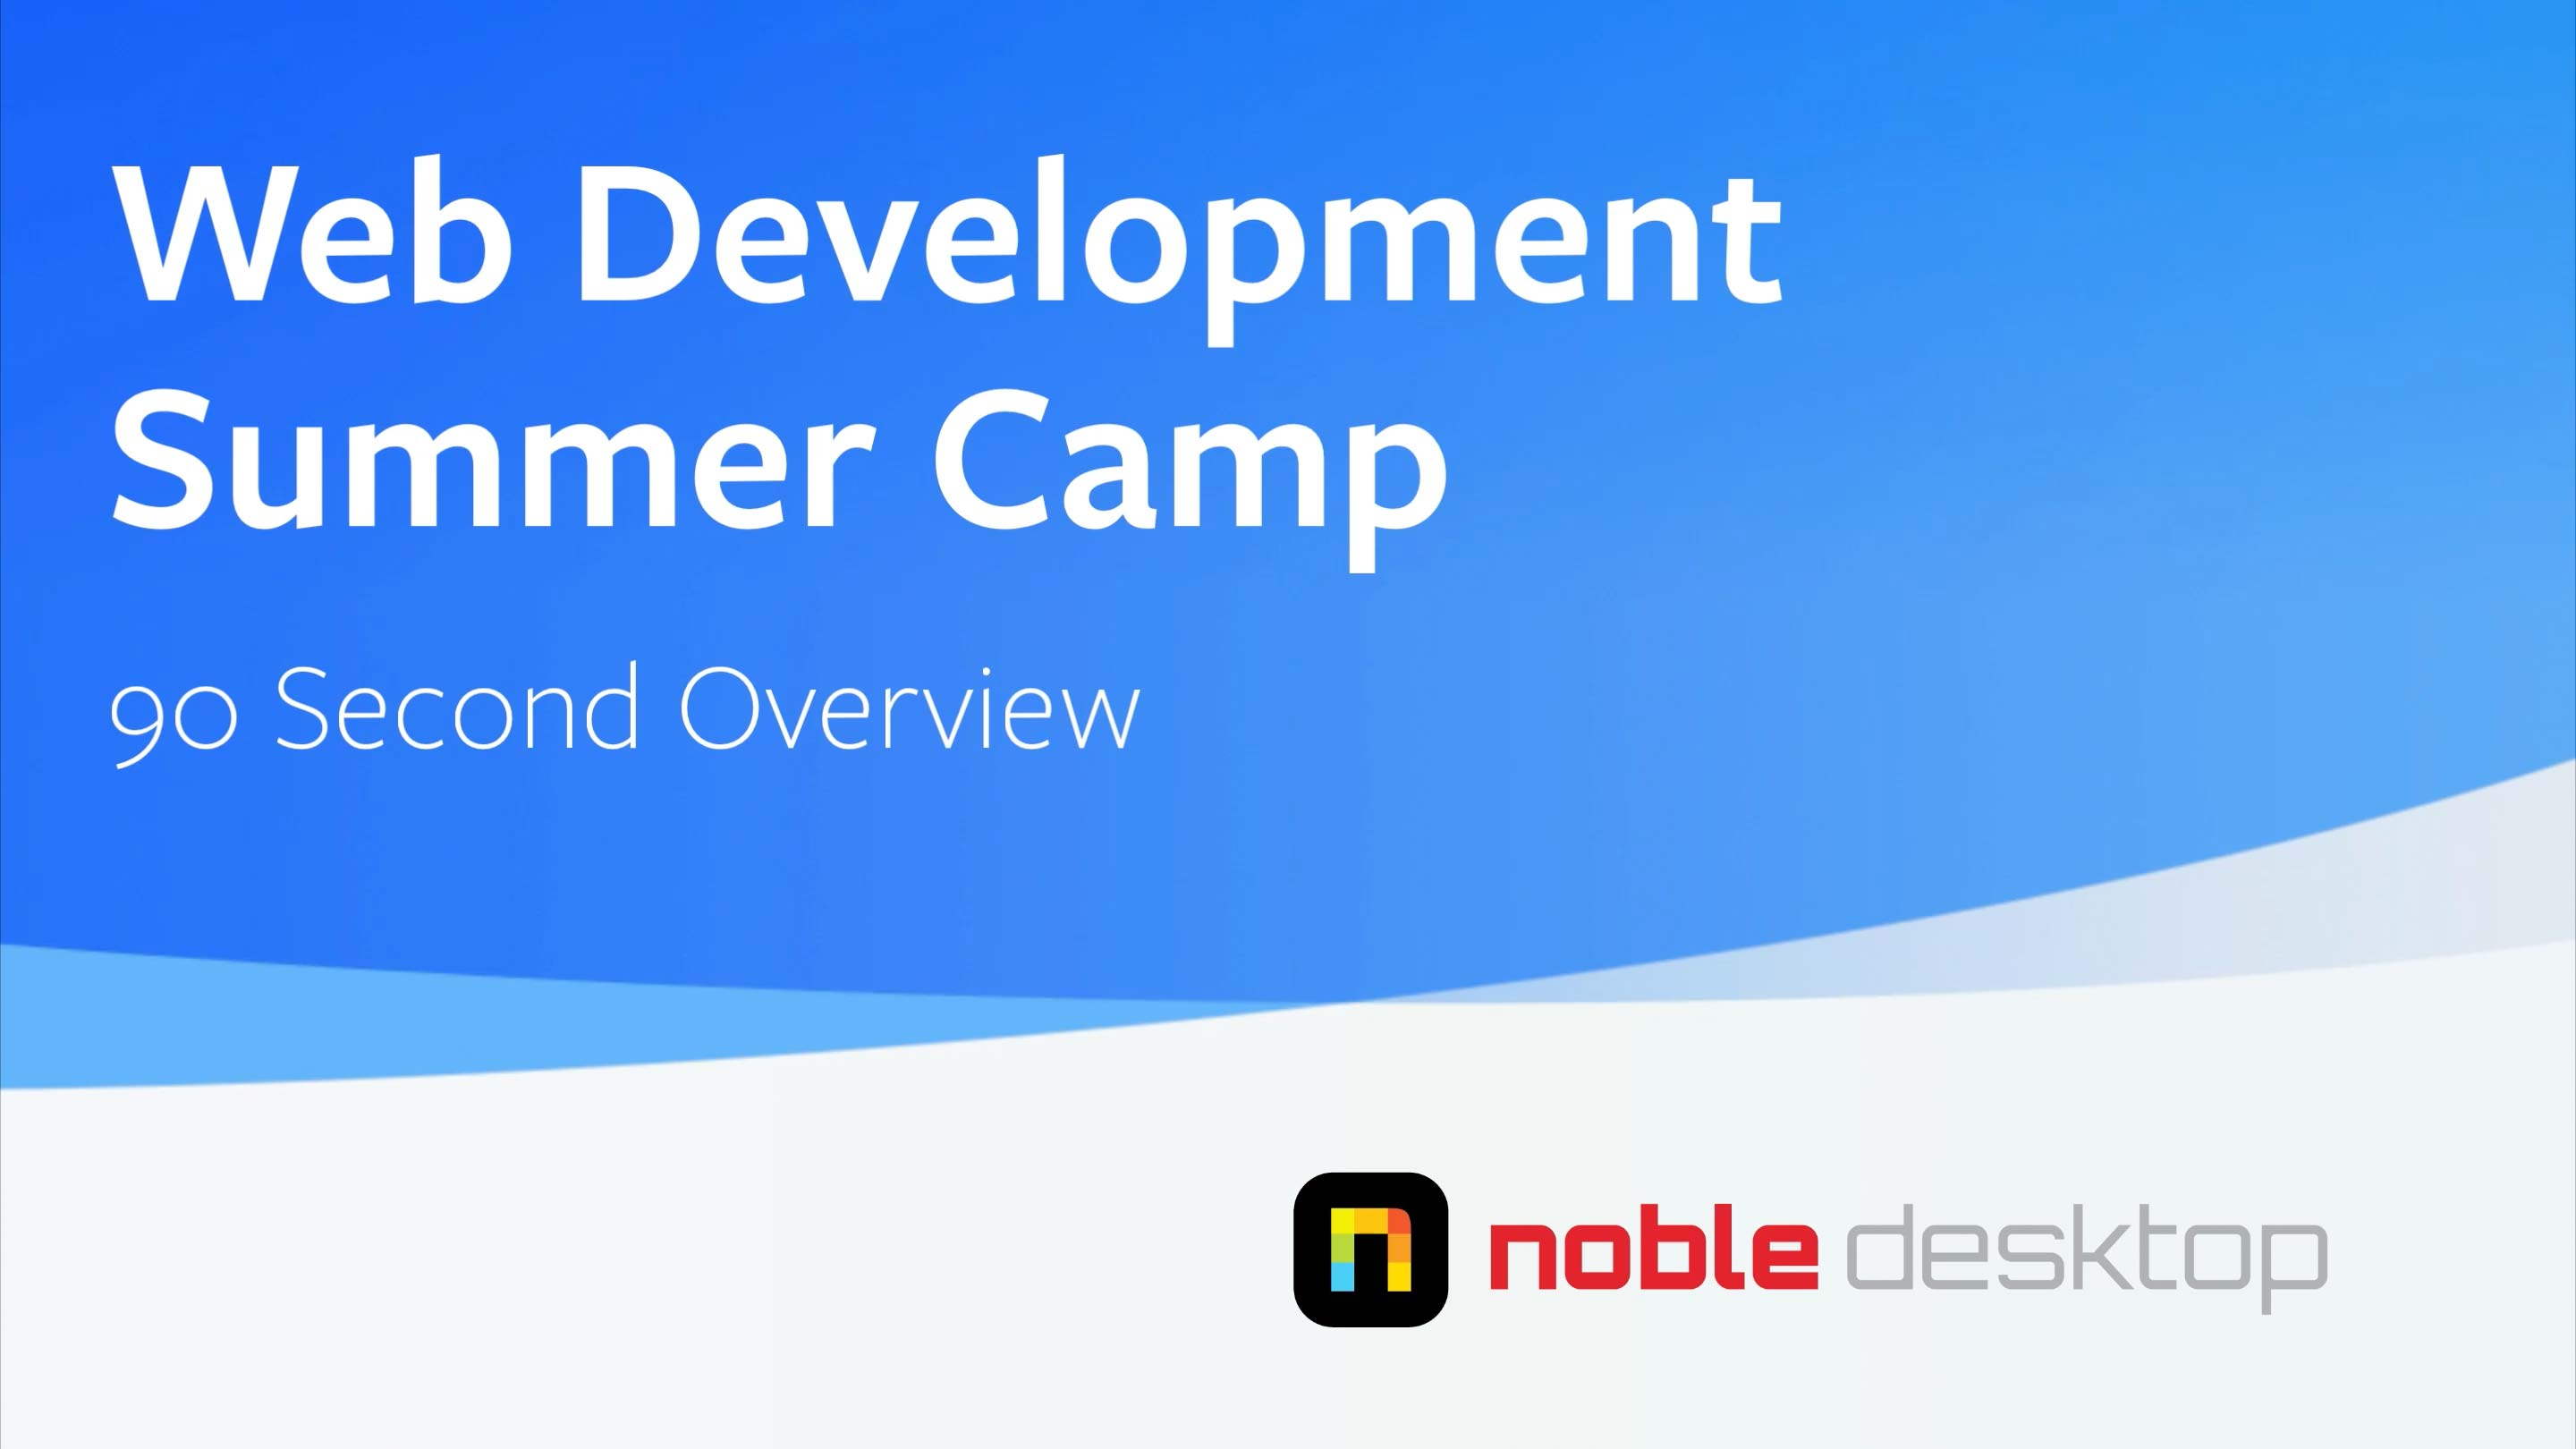 Web Development Summer Camp (NJ) Class Overview